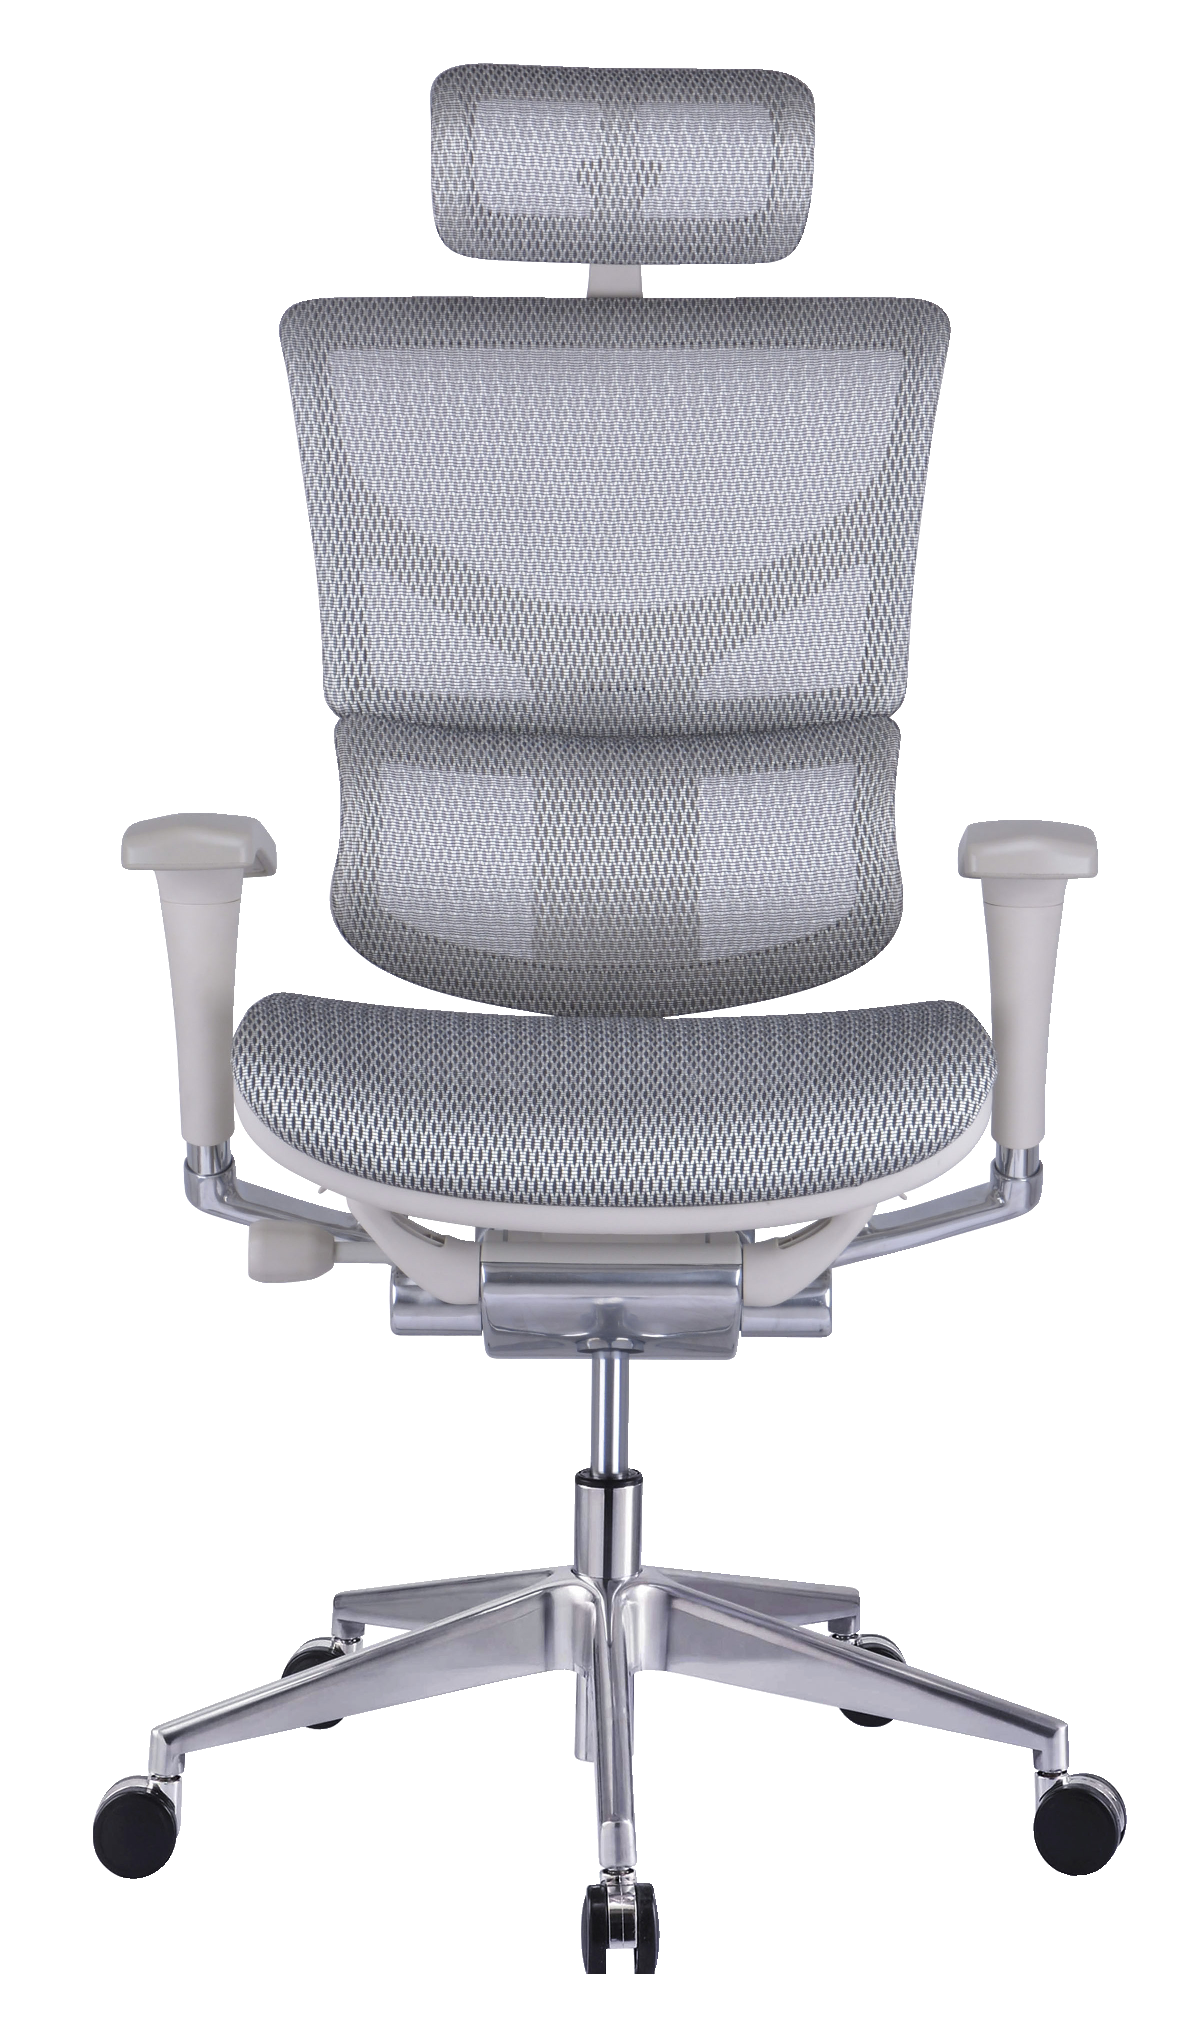 Officeworks Ergonomic Chairs Rioli Ergonomic Chair White More My Style Chair